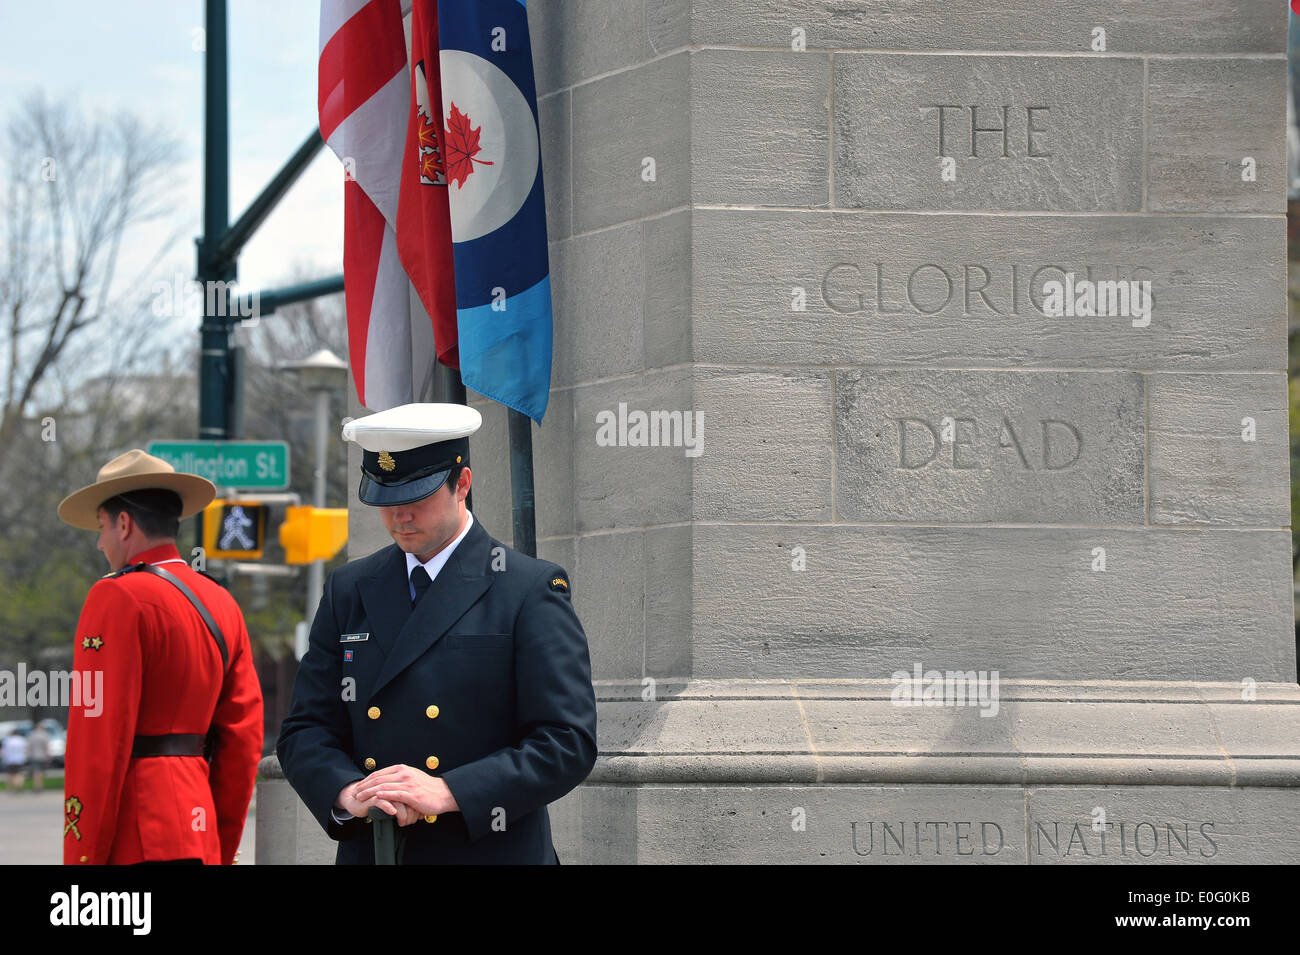 Images from the Canadian National Day of Honour an event to remember the Canadians who died in the Afghanistan conflict. - Stock Image